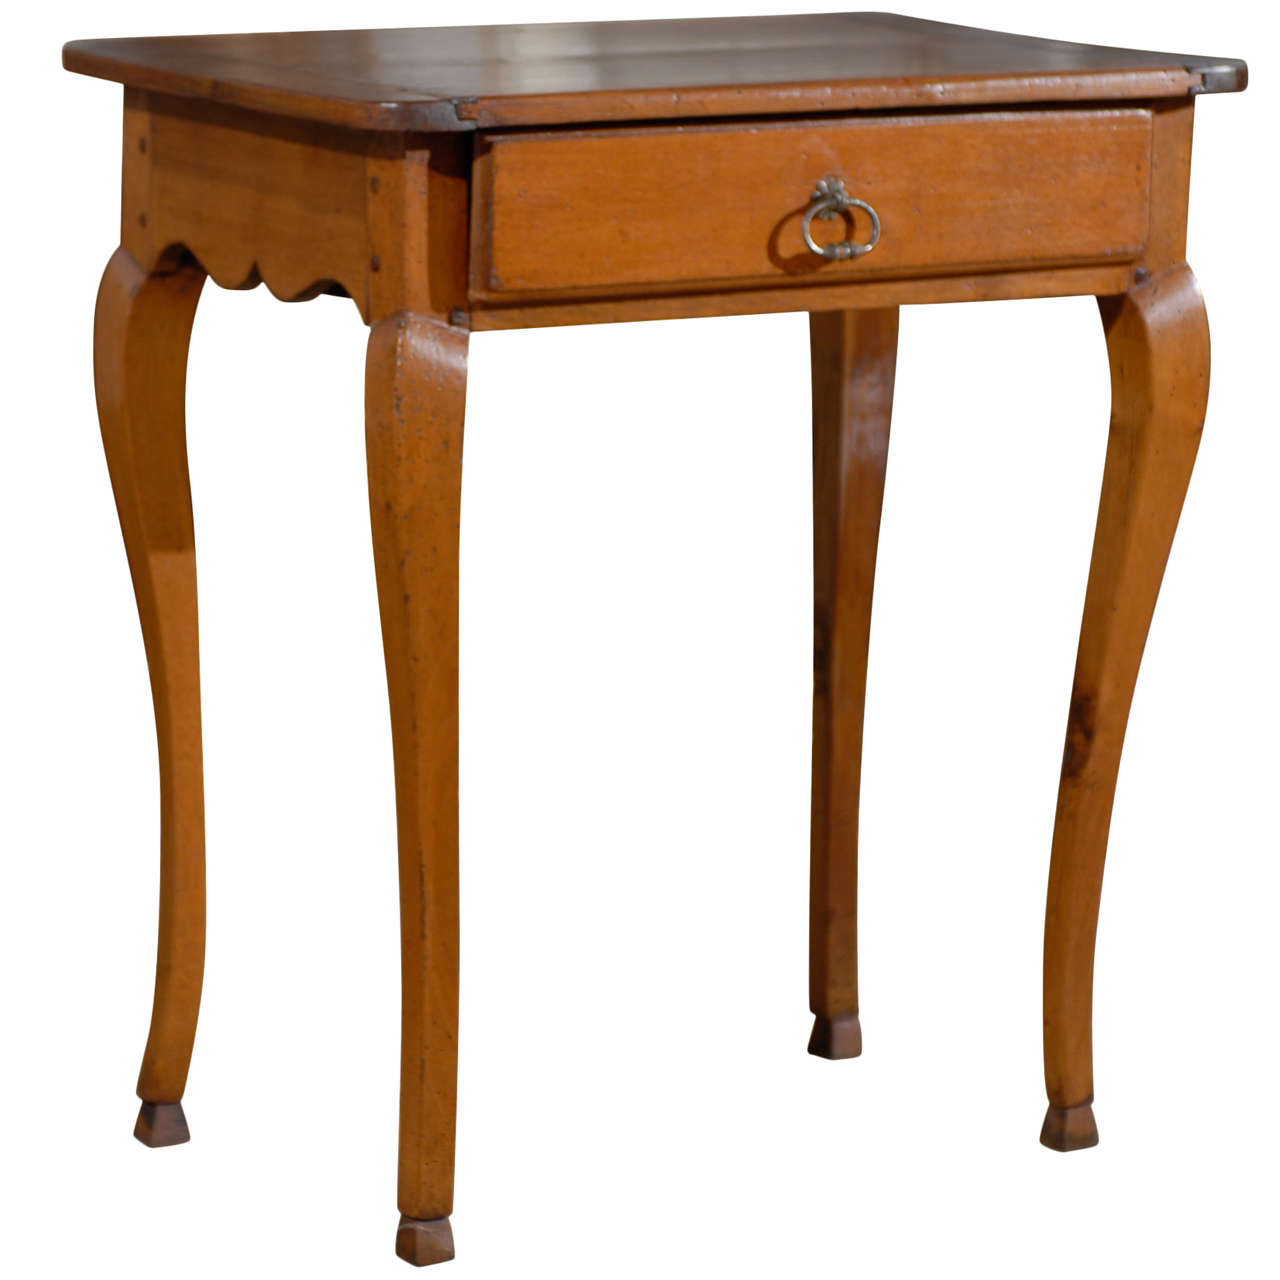 Louis xv style table at 1stdibs - Table louis xv ...